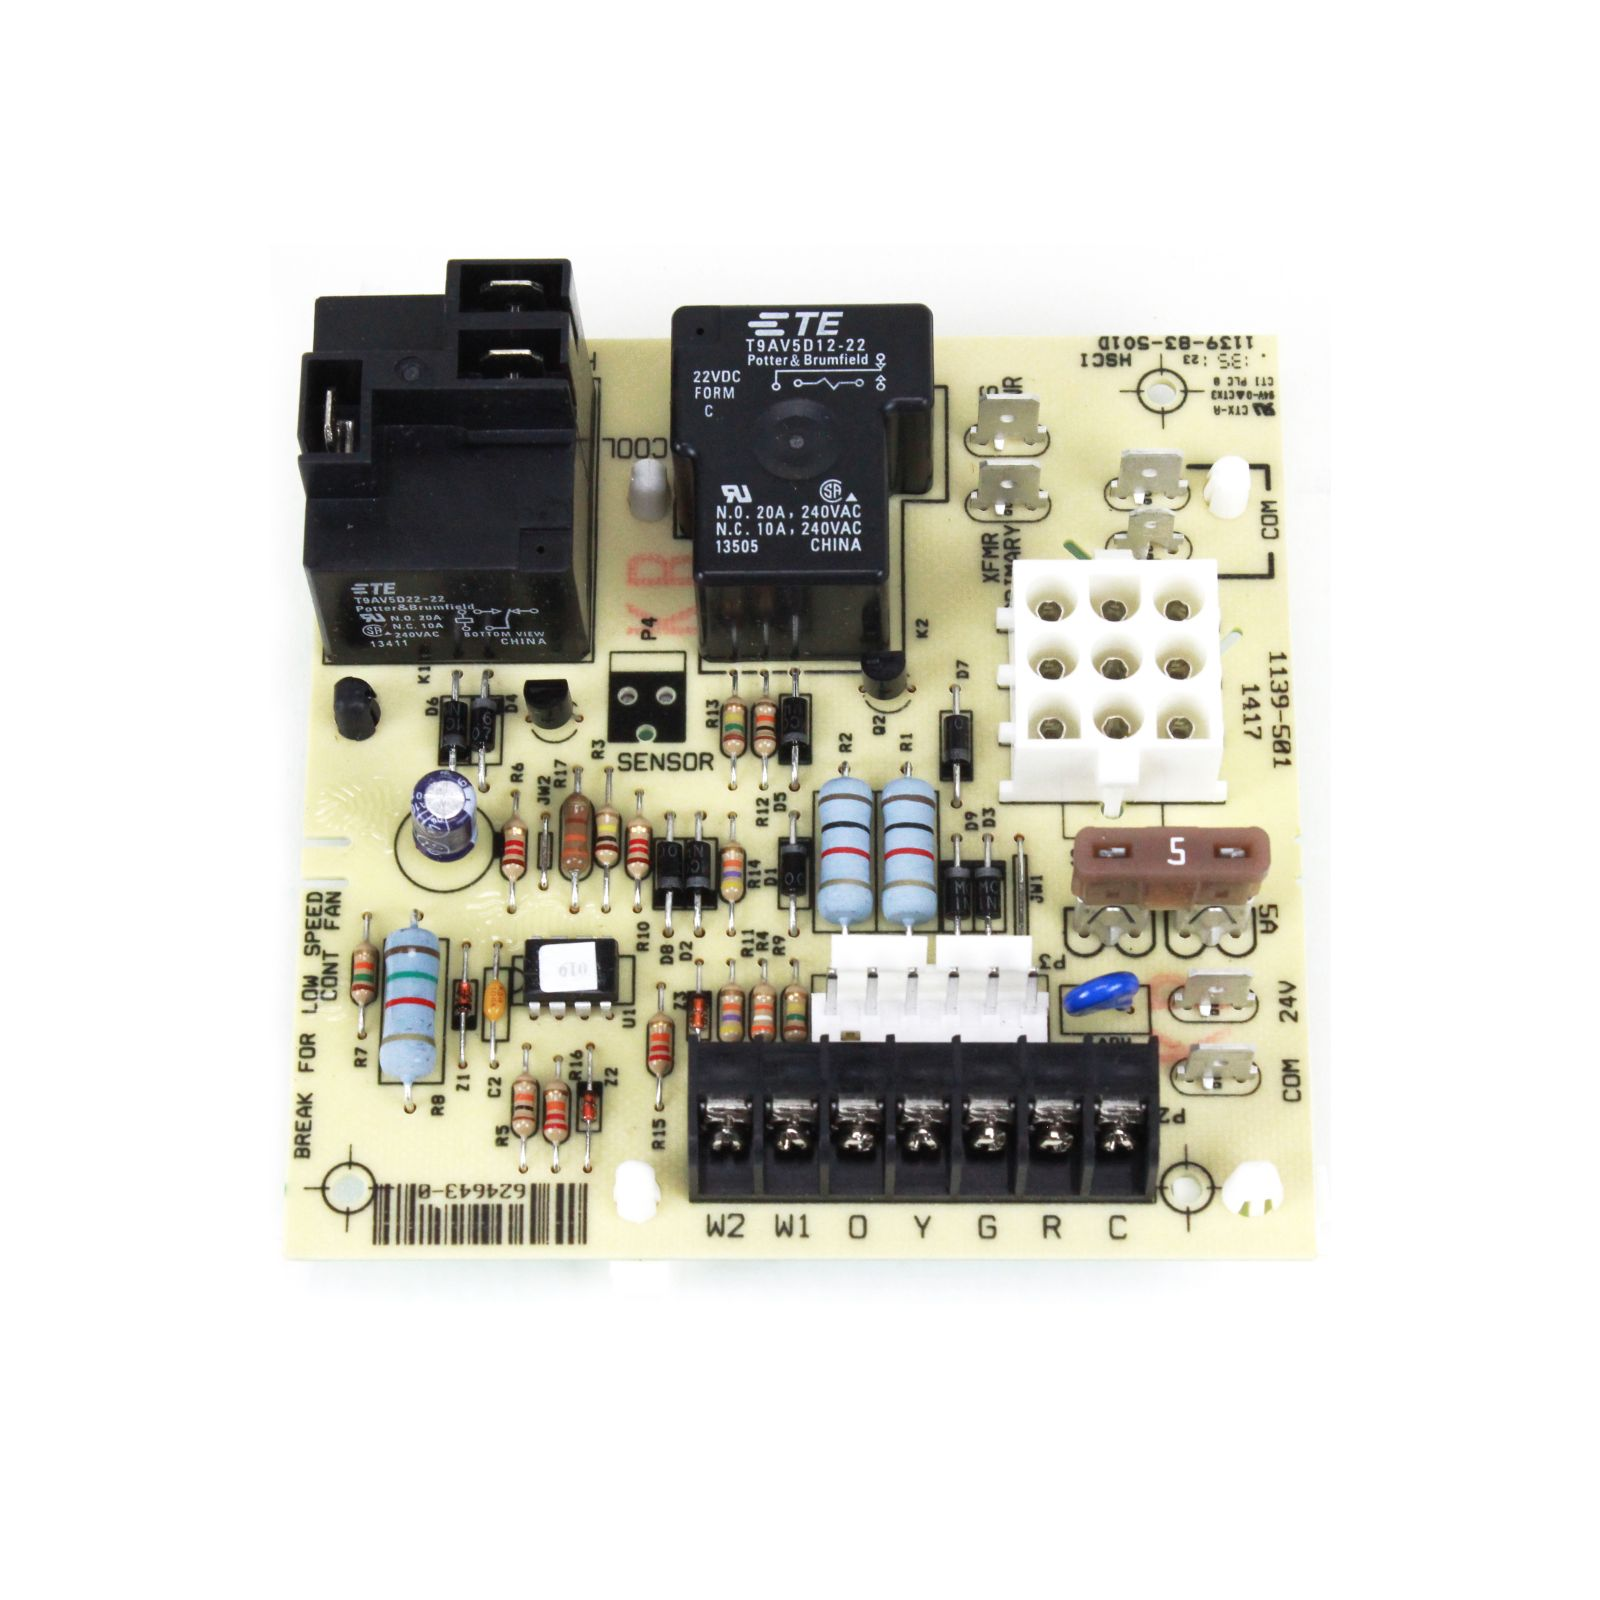 Nortek 903915A - Replacement Control Board - B3B Air Handler